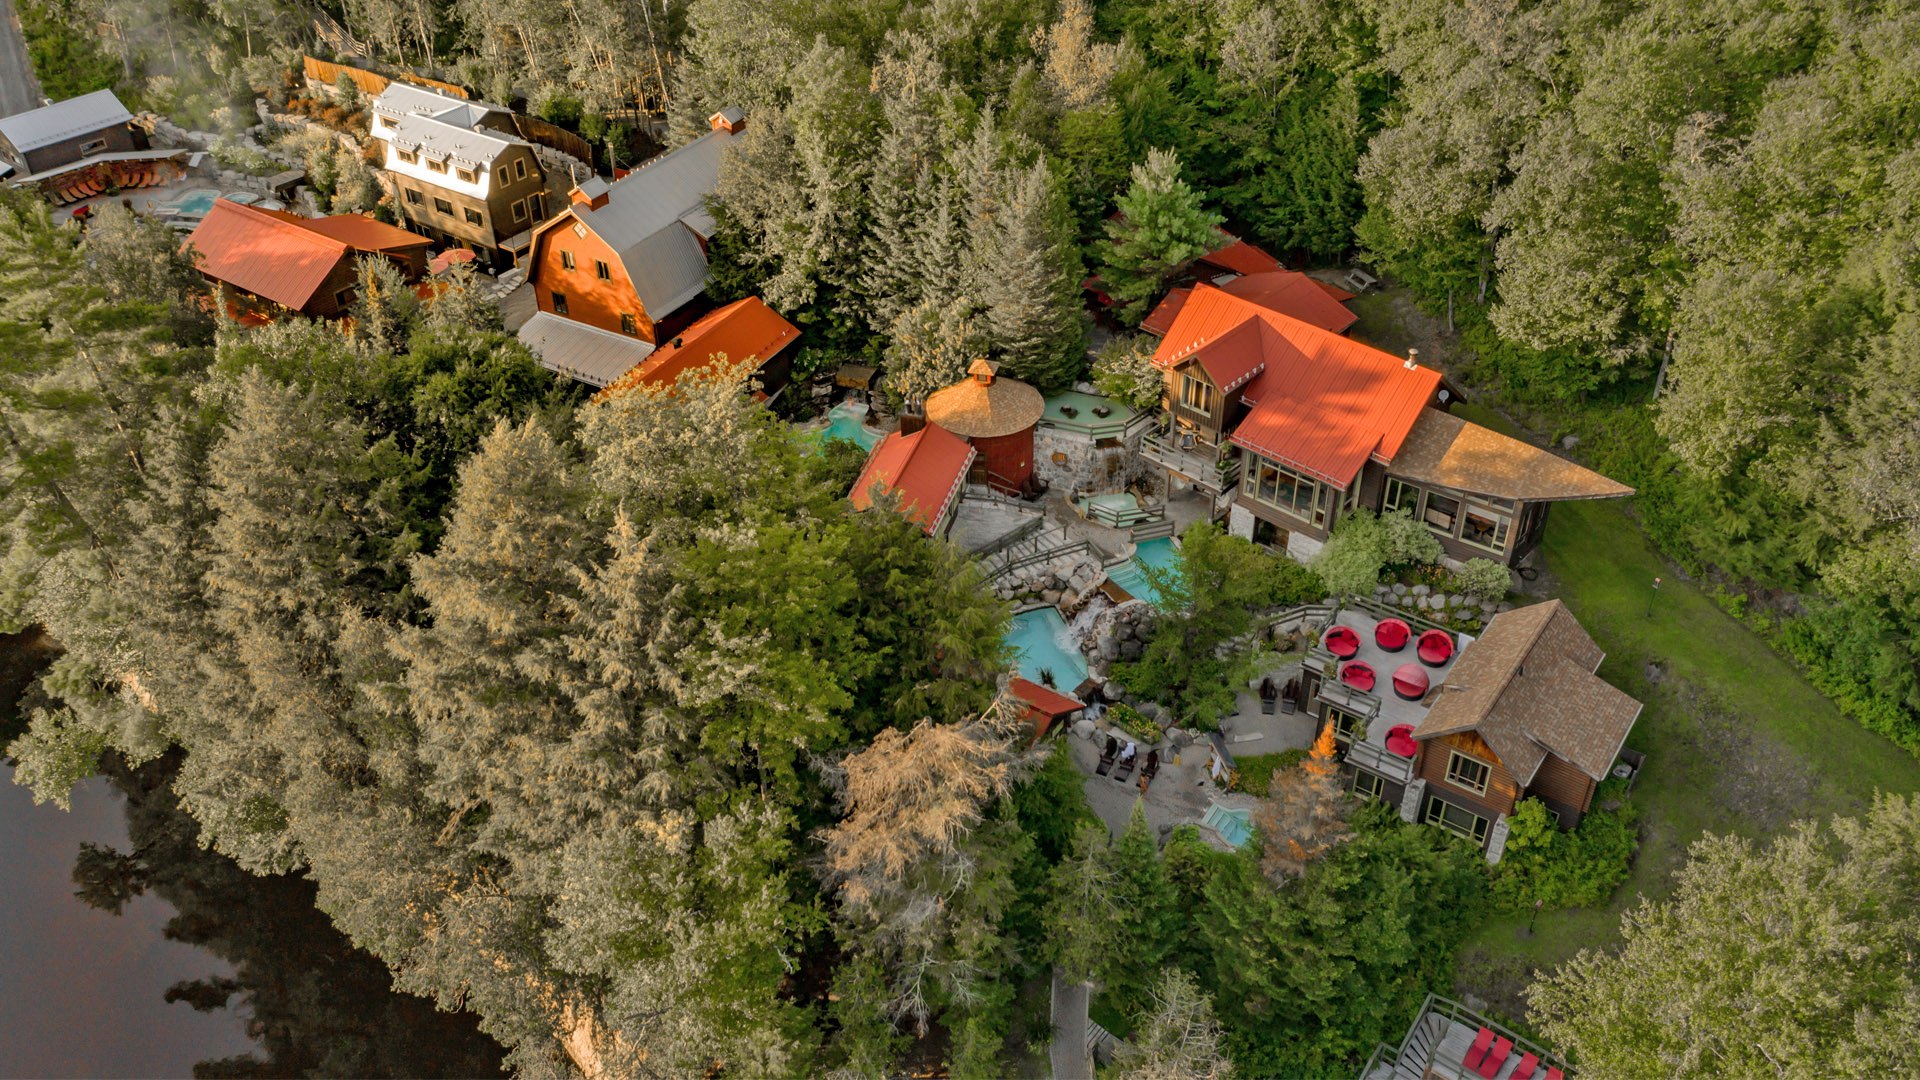 A bird's eye view of the Scandinave Spa Tremblant and the surrounding forest on a clear summer day.